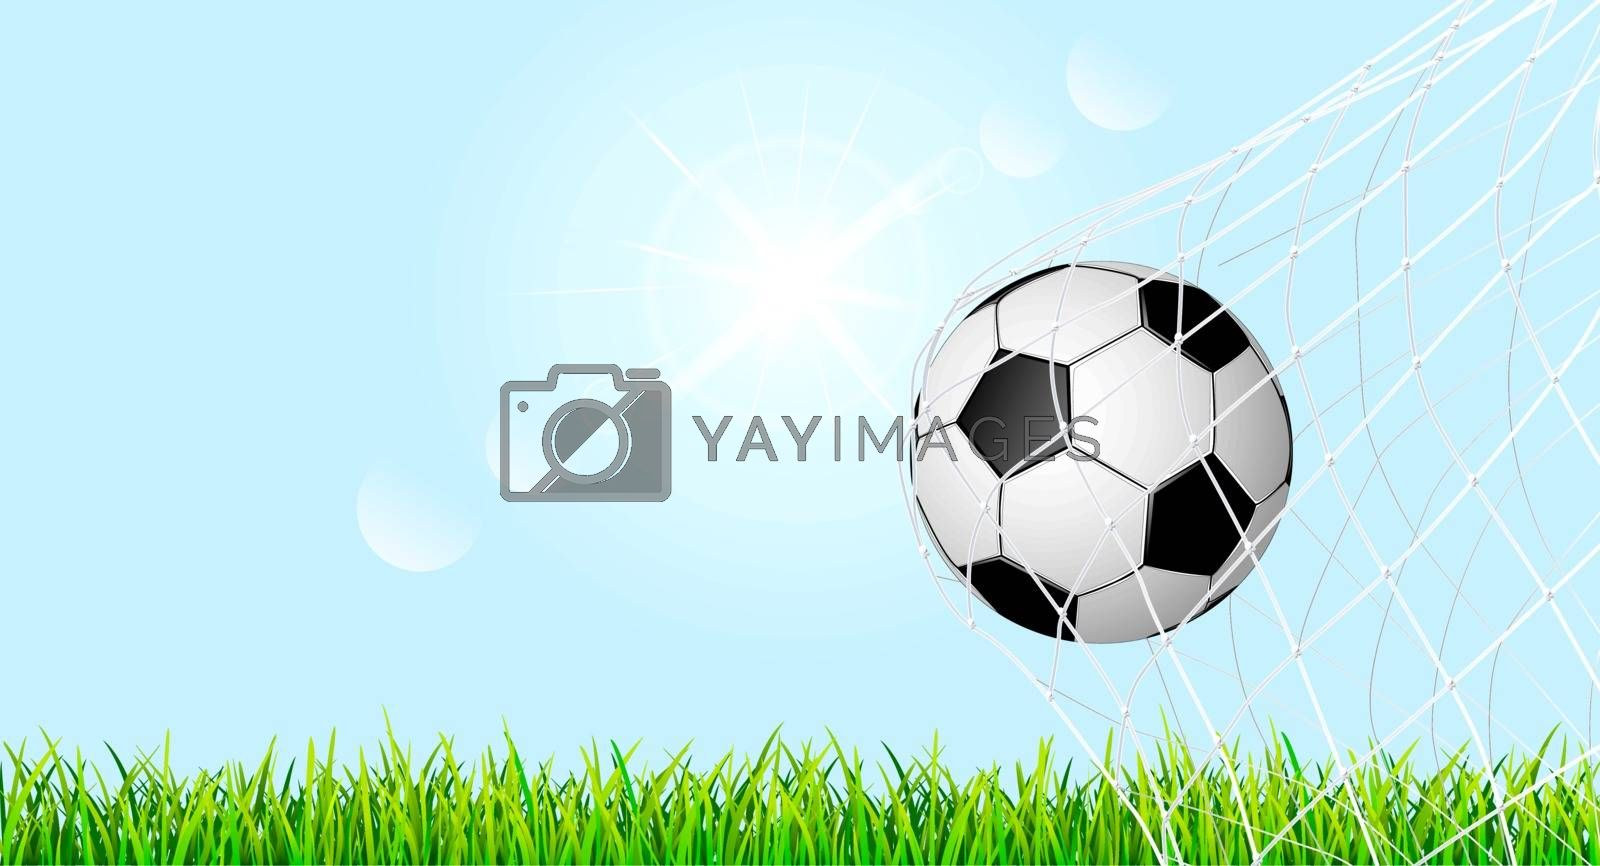 Banner with soccer ball and grass lawn.The soccer ball is in the goal net. Soccer ball on green grass against the blue sky.